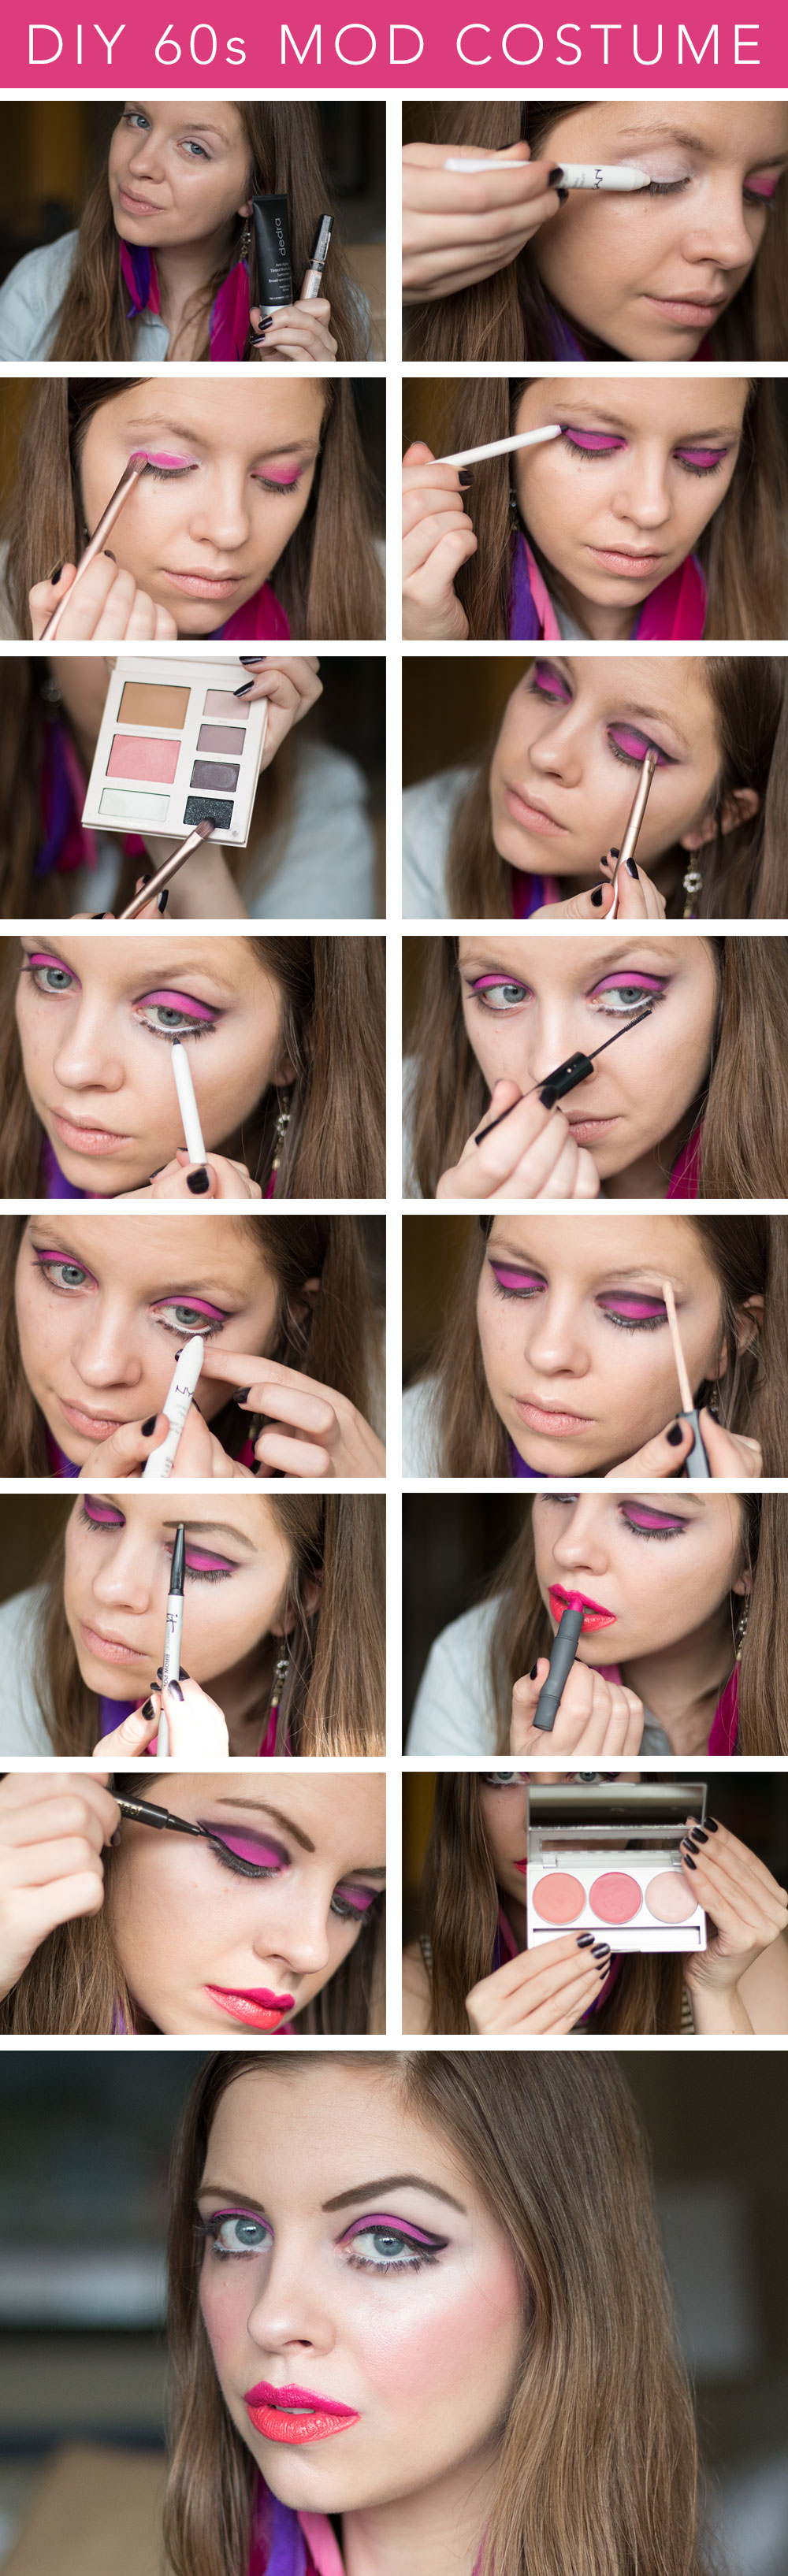 60s mod makeup tutorial costume seattle beauty blog diy 60s mod costume for twiggy inspired look step by step makeup tutorial baditri Gallery